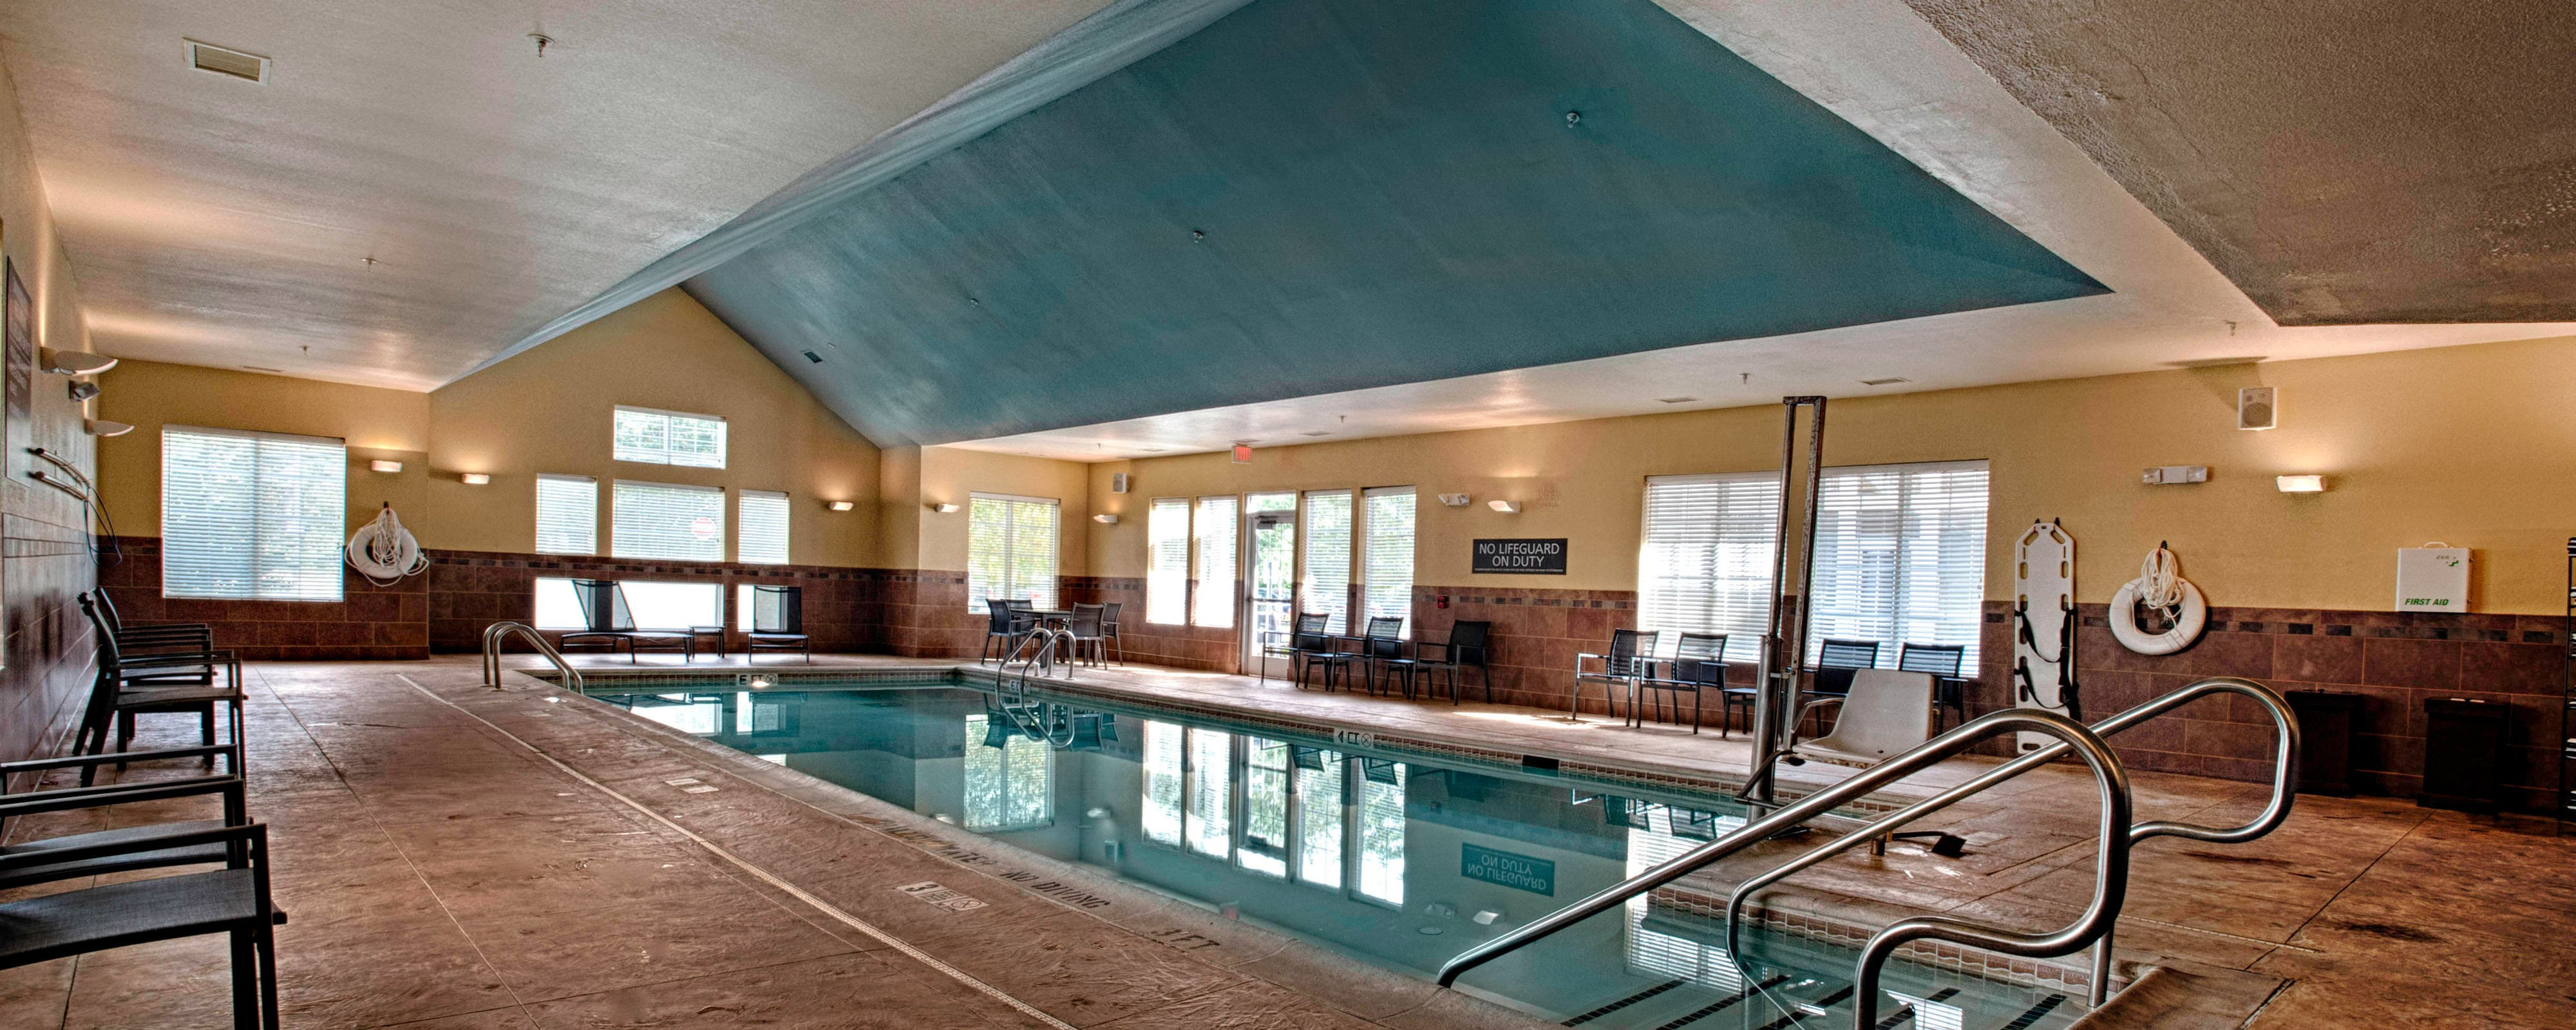 Egg Harbor New Jersey Hotel – Pool